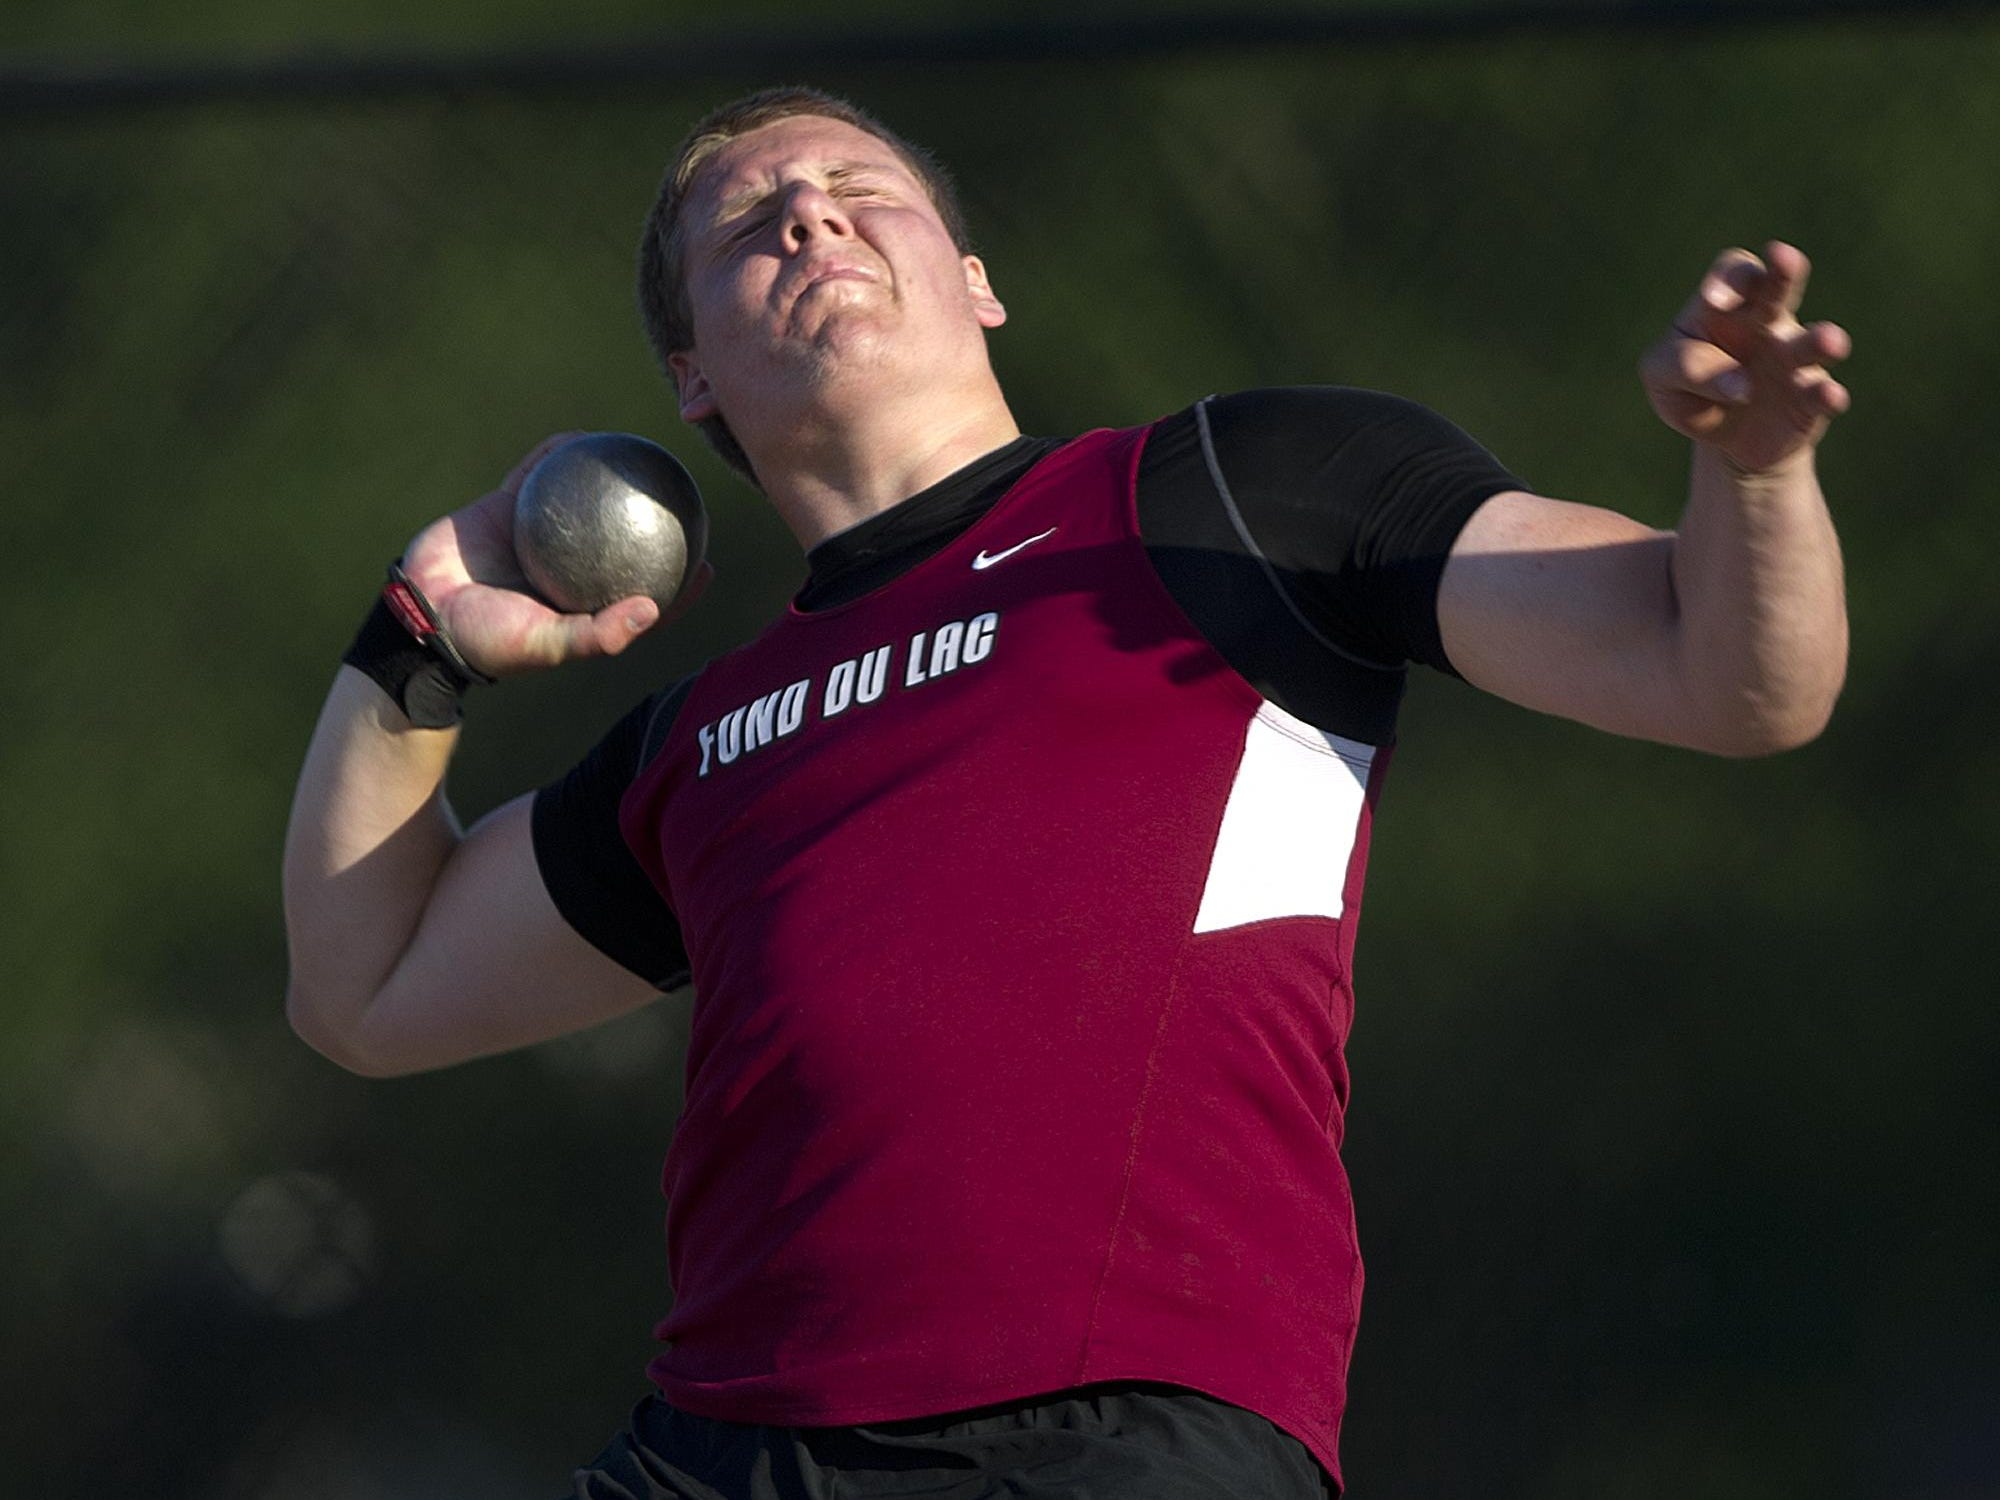 Fond du Lac's Peter Andrew competes in the shot put at Friday's WIAA Division 1 state track and field meet.